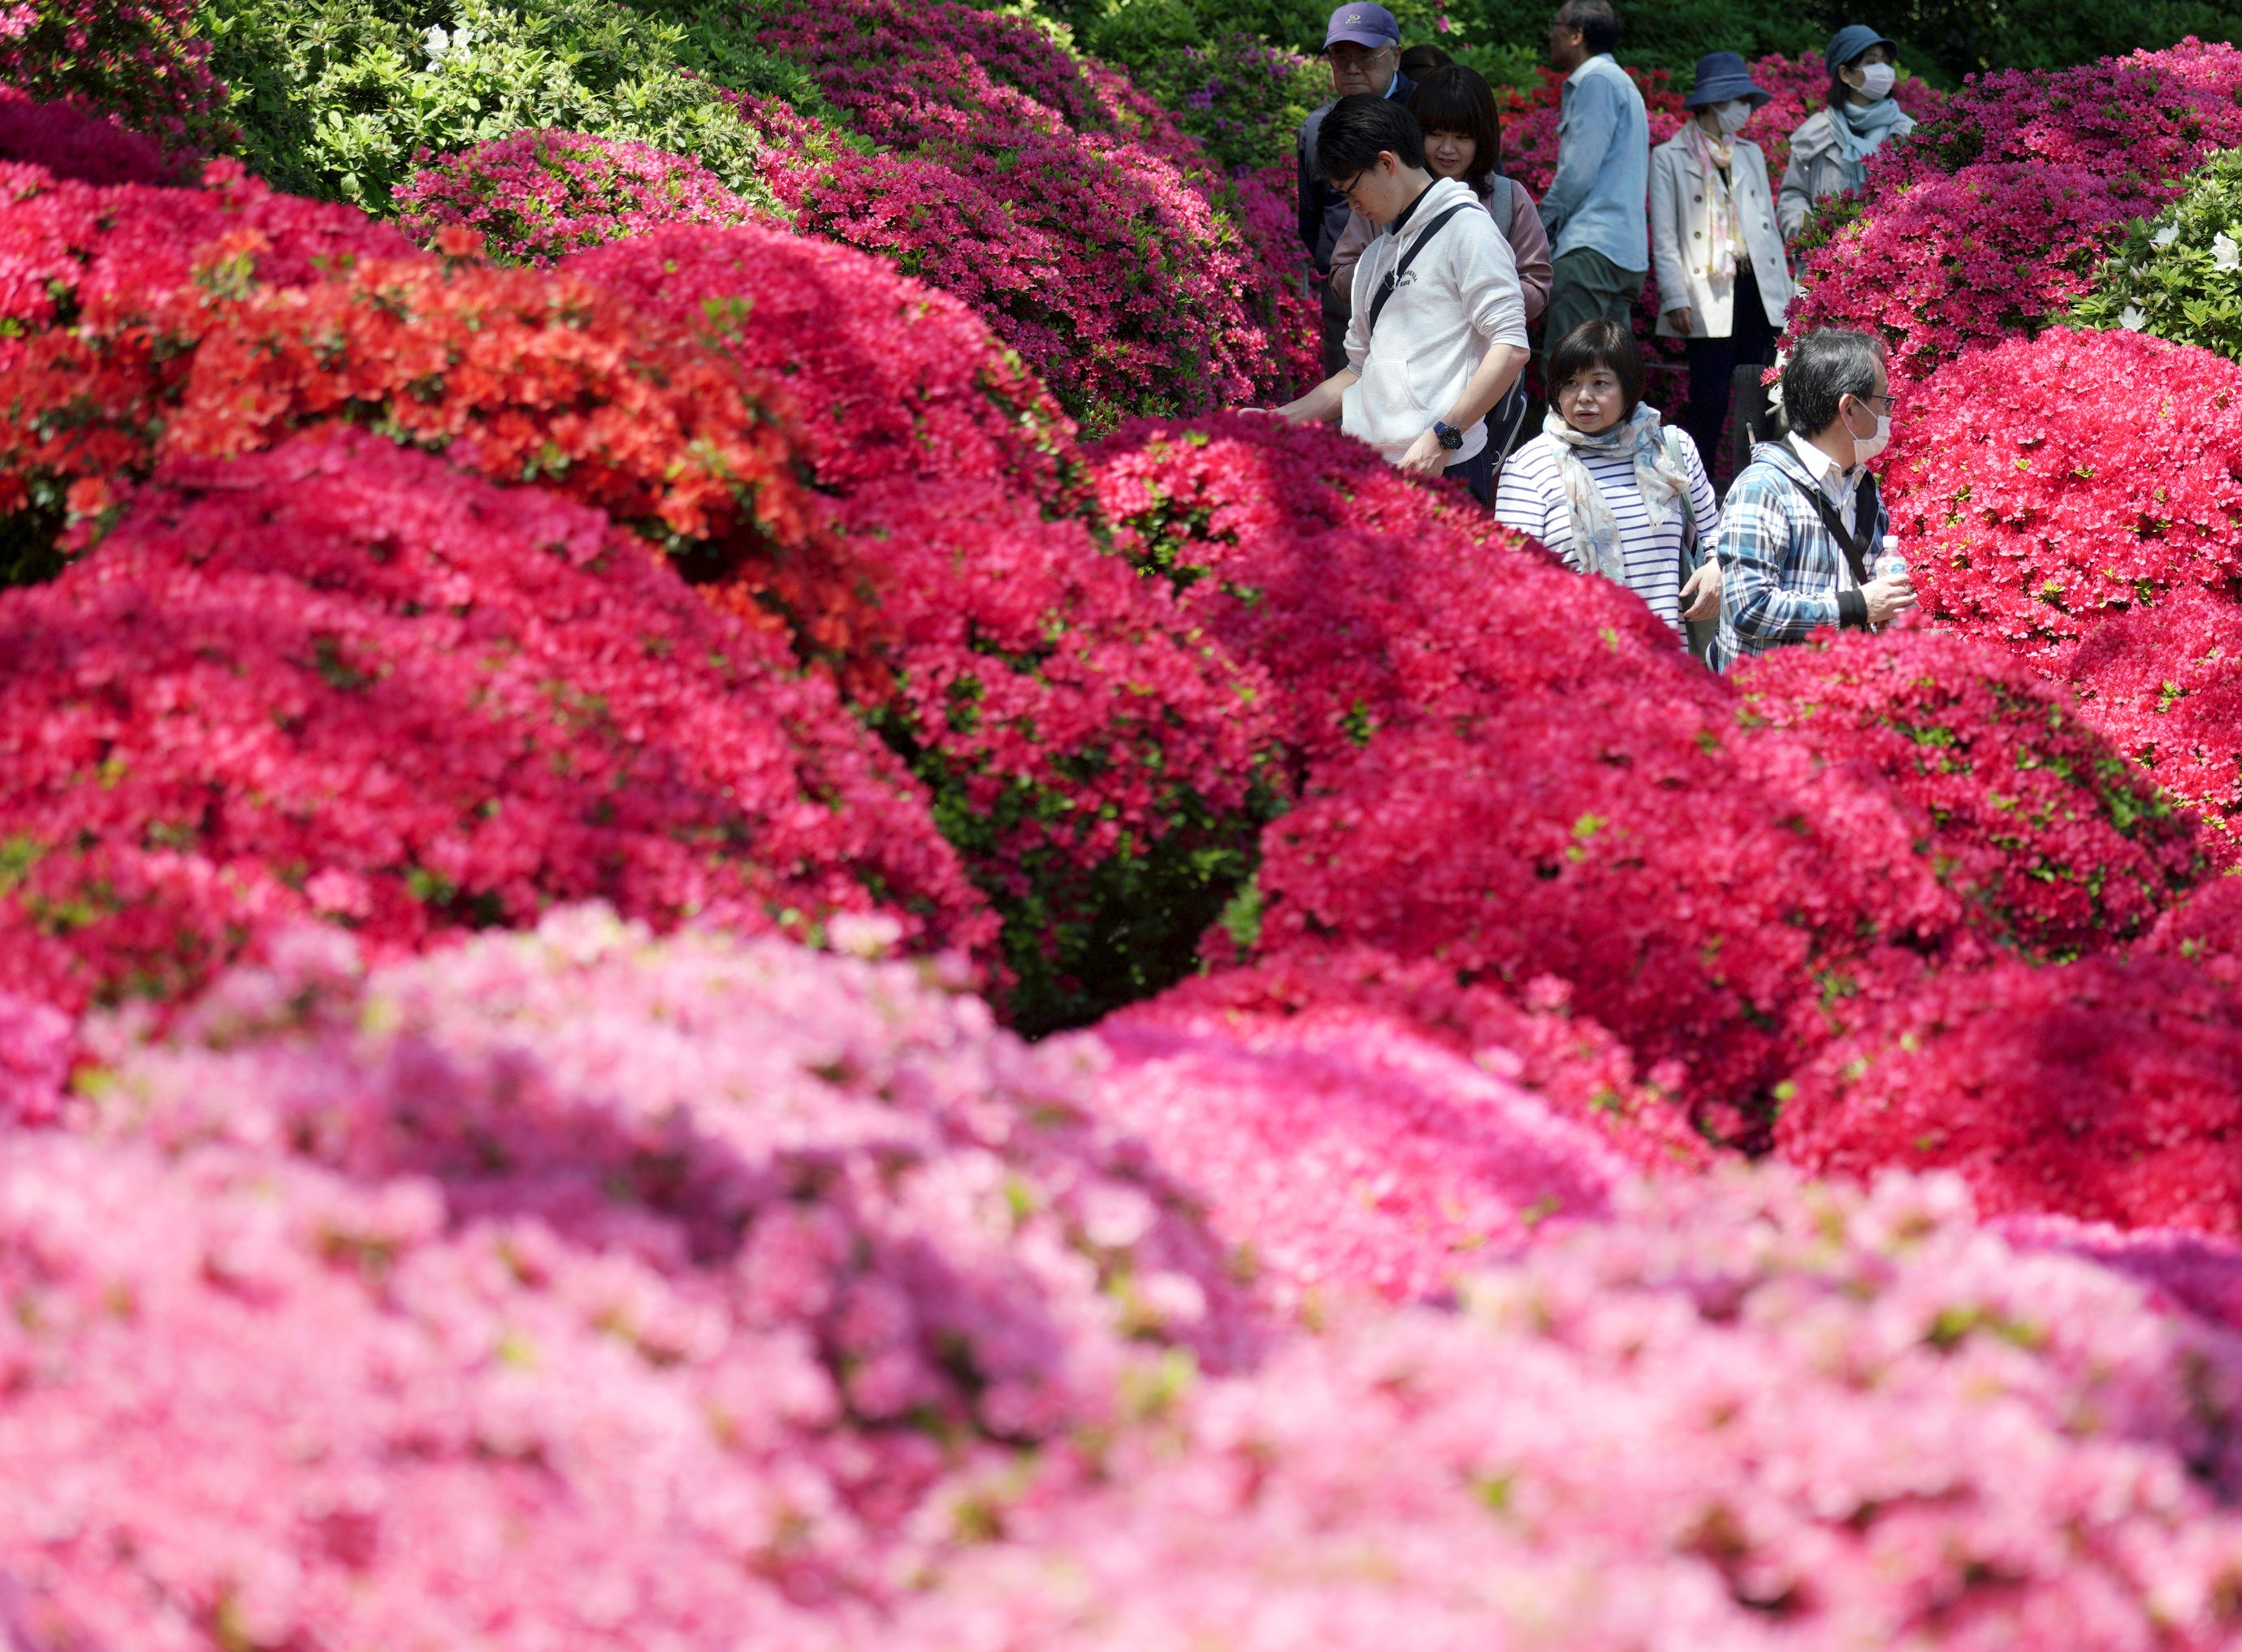 Visitors walk through azalea blossoms at Nezu Shrine during a day of mild spring weather in Tokyo Tuesday, April 16, 2019. Nezu Shrine is one of the oldest shrines in Tokyo.